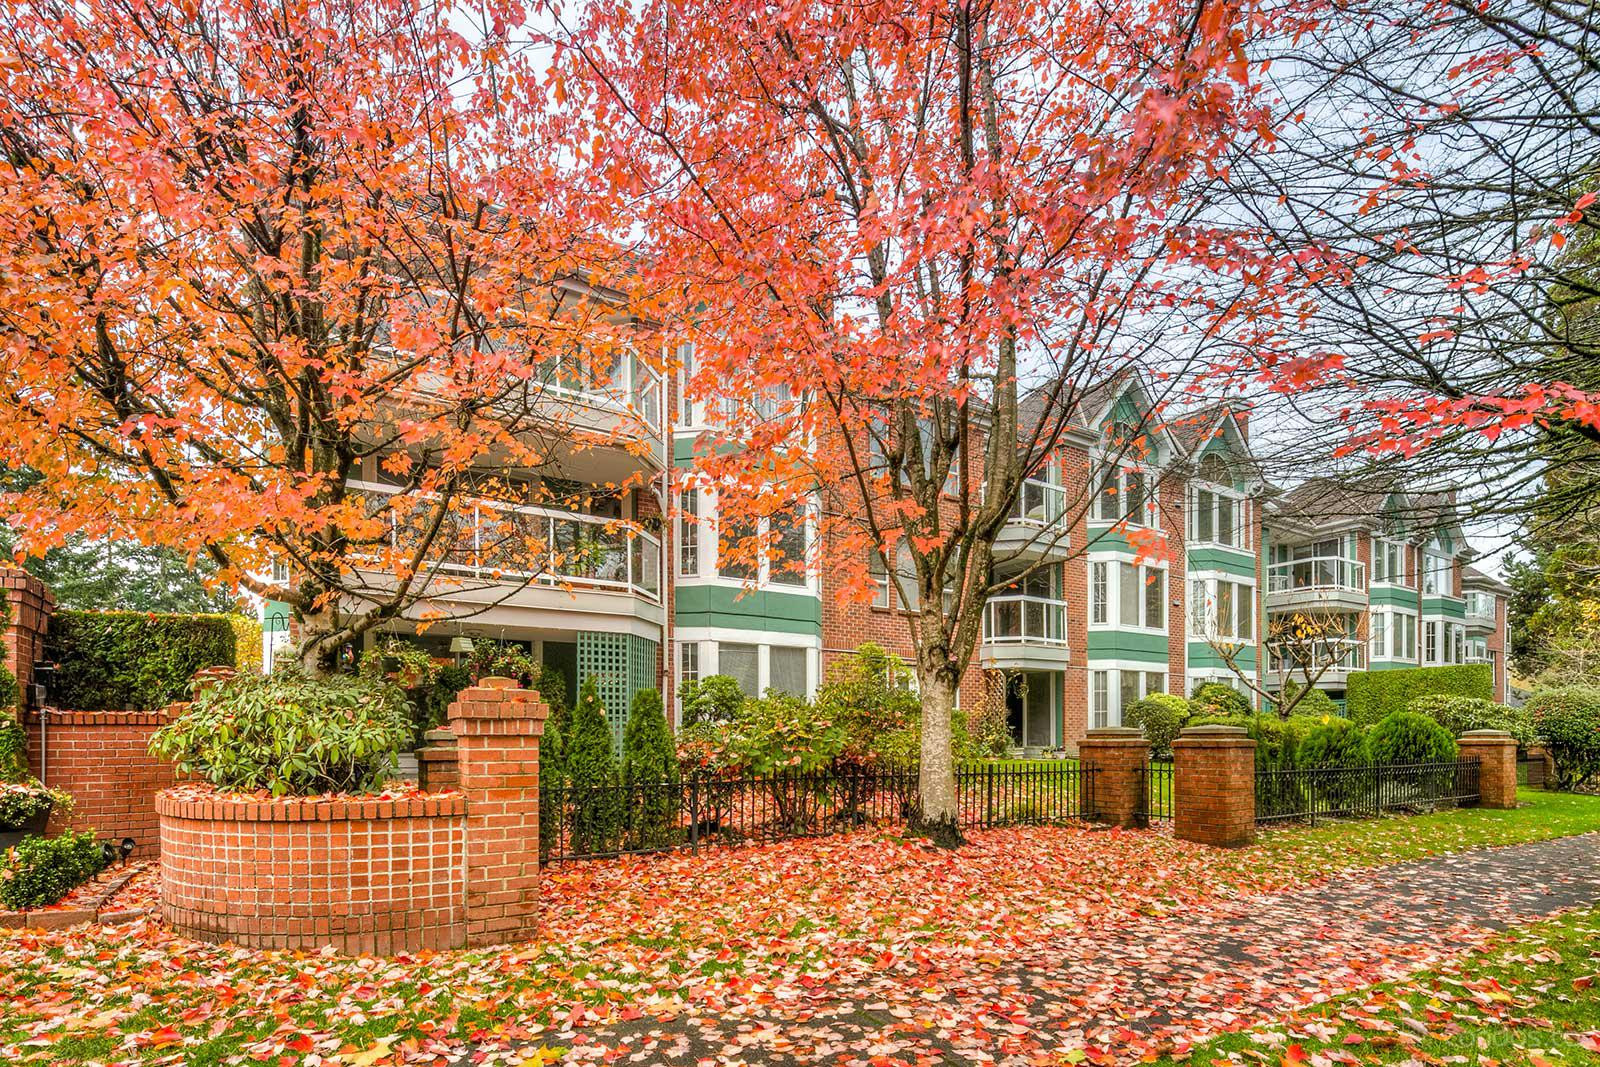 Augusta Springs at 1675 Augusta Ave, Burnaby 1